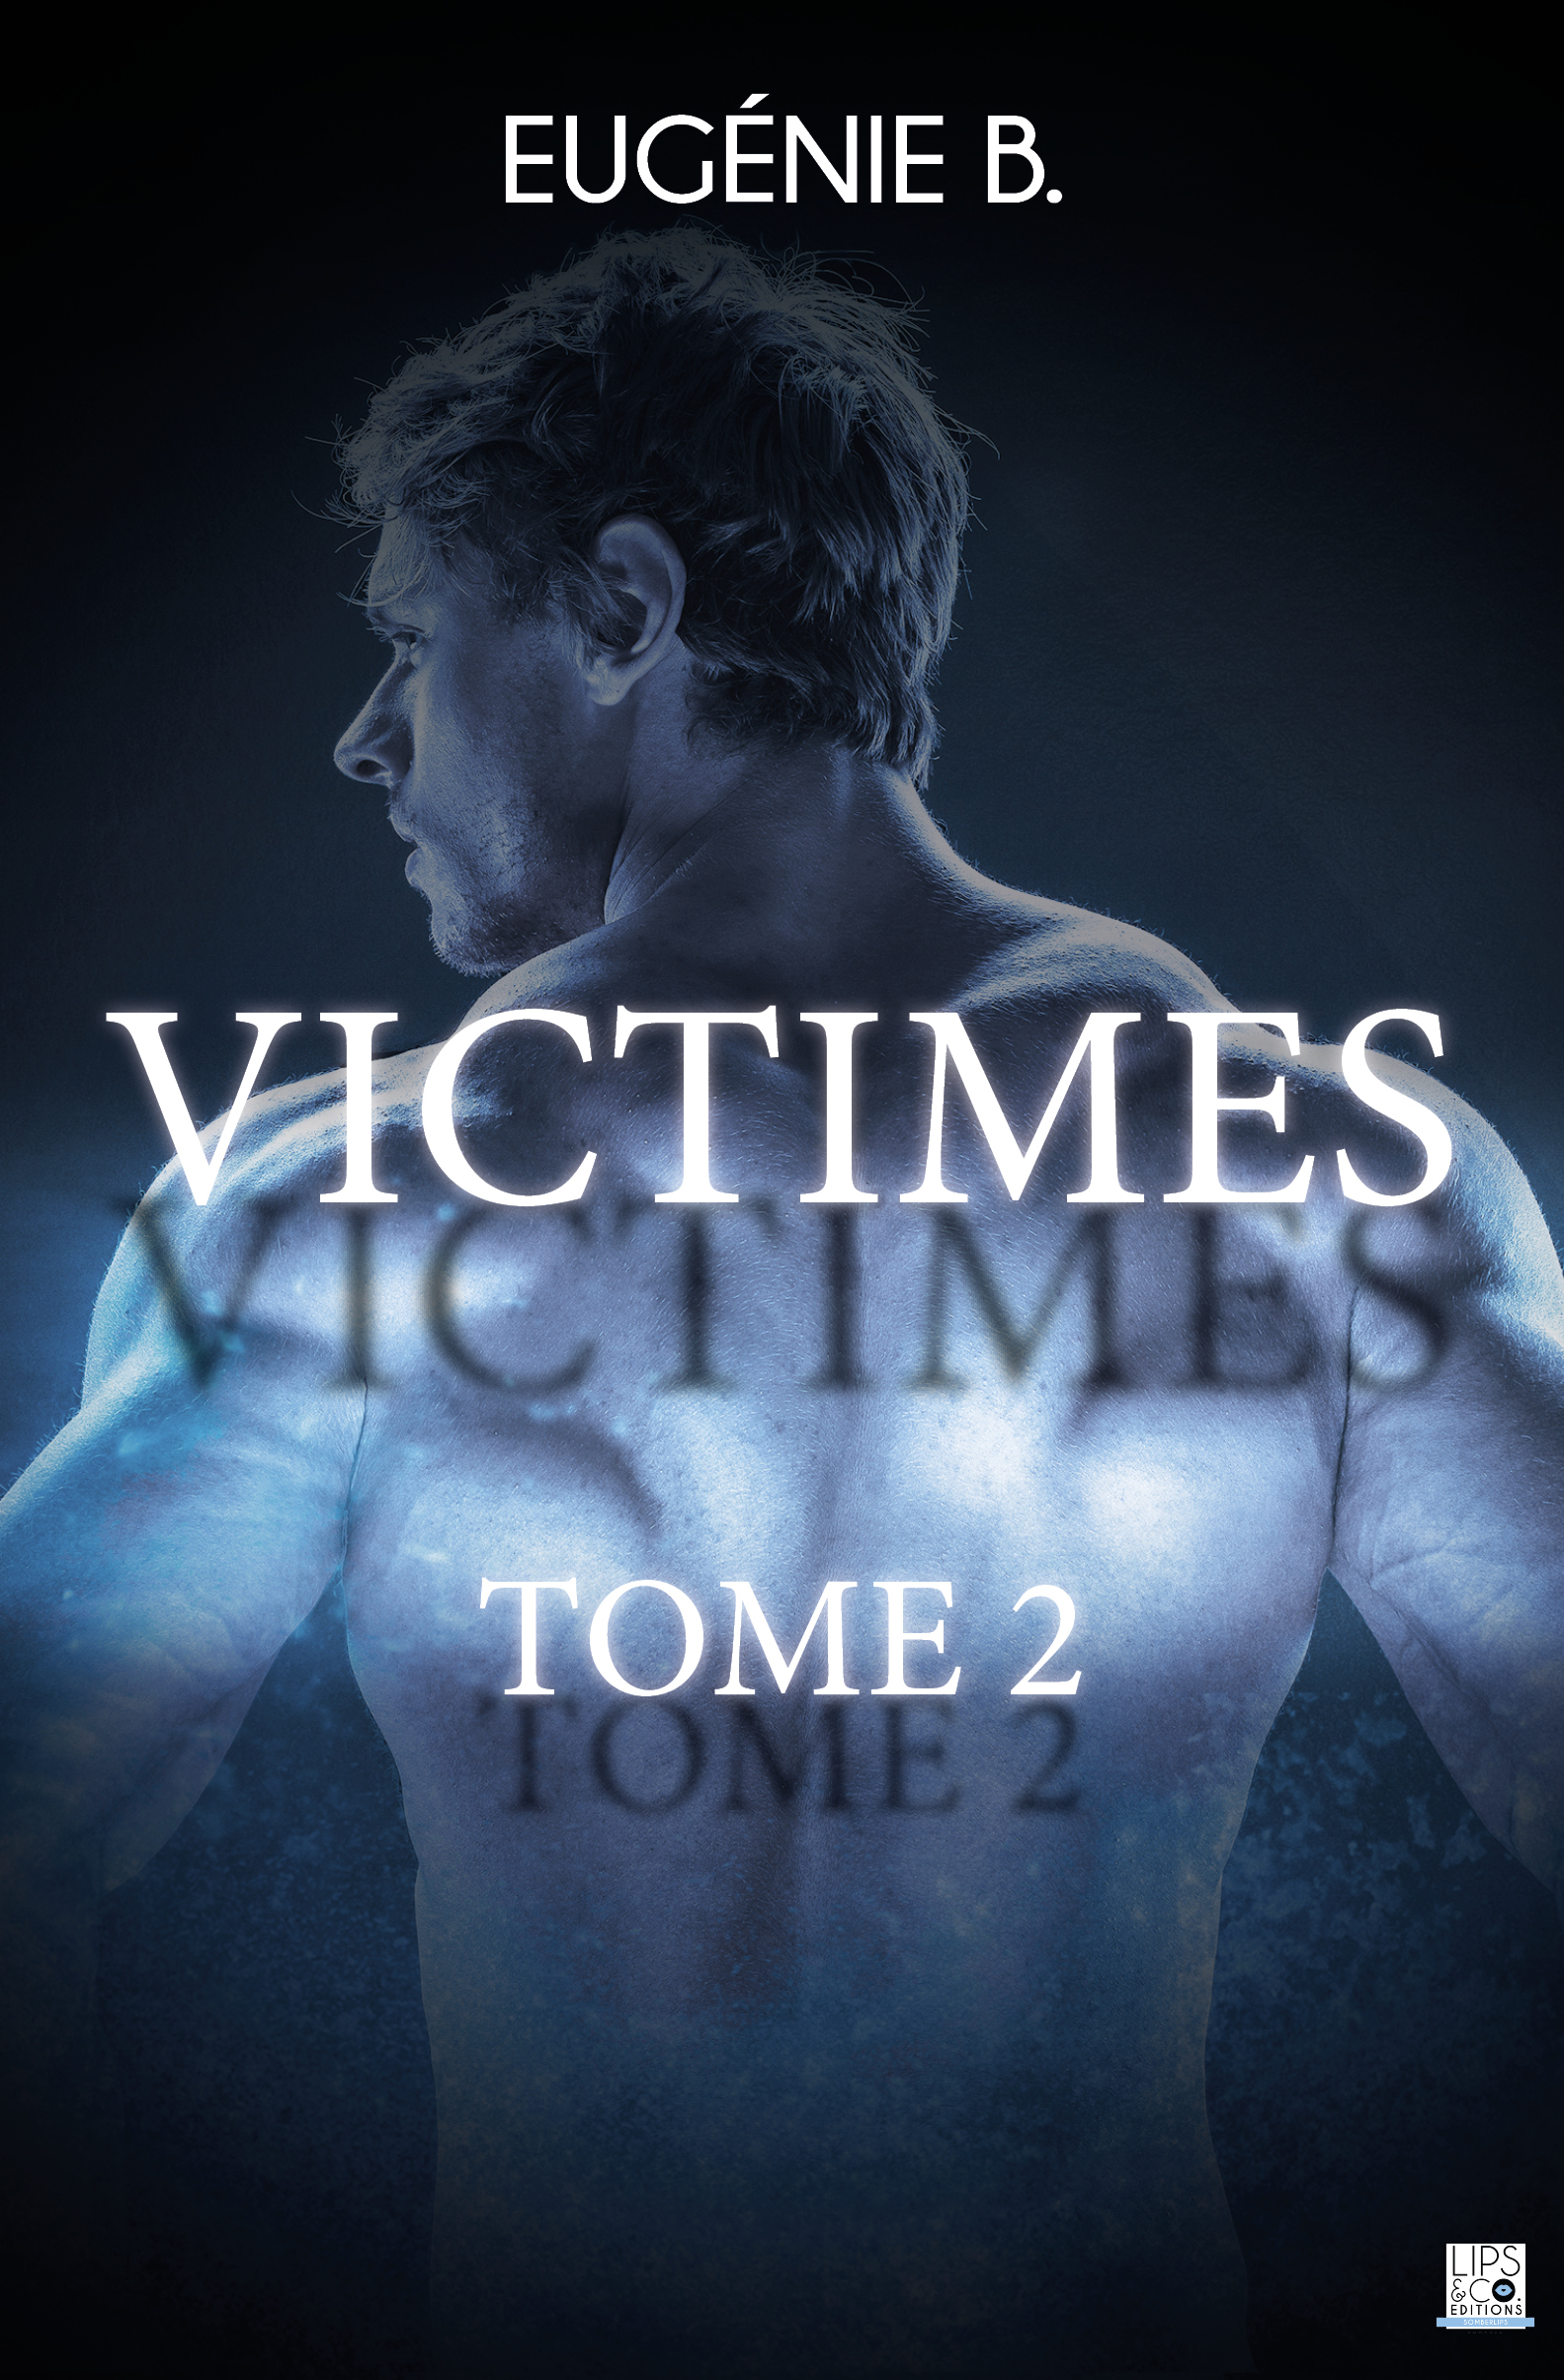 Victimes - Tome 2